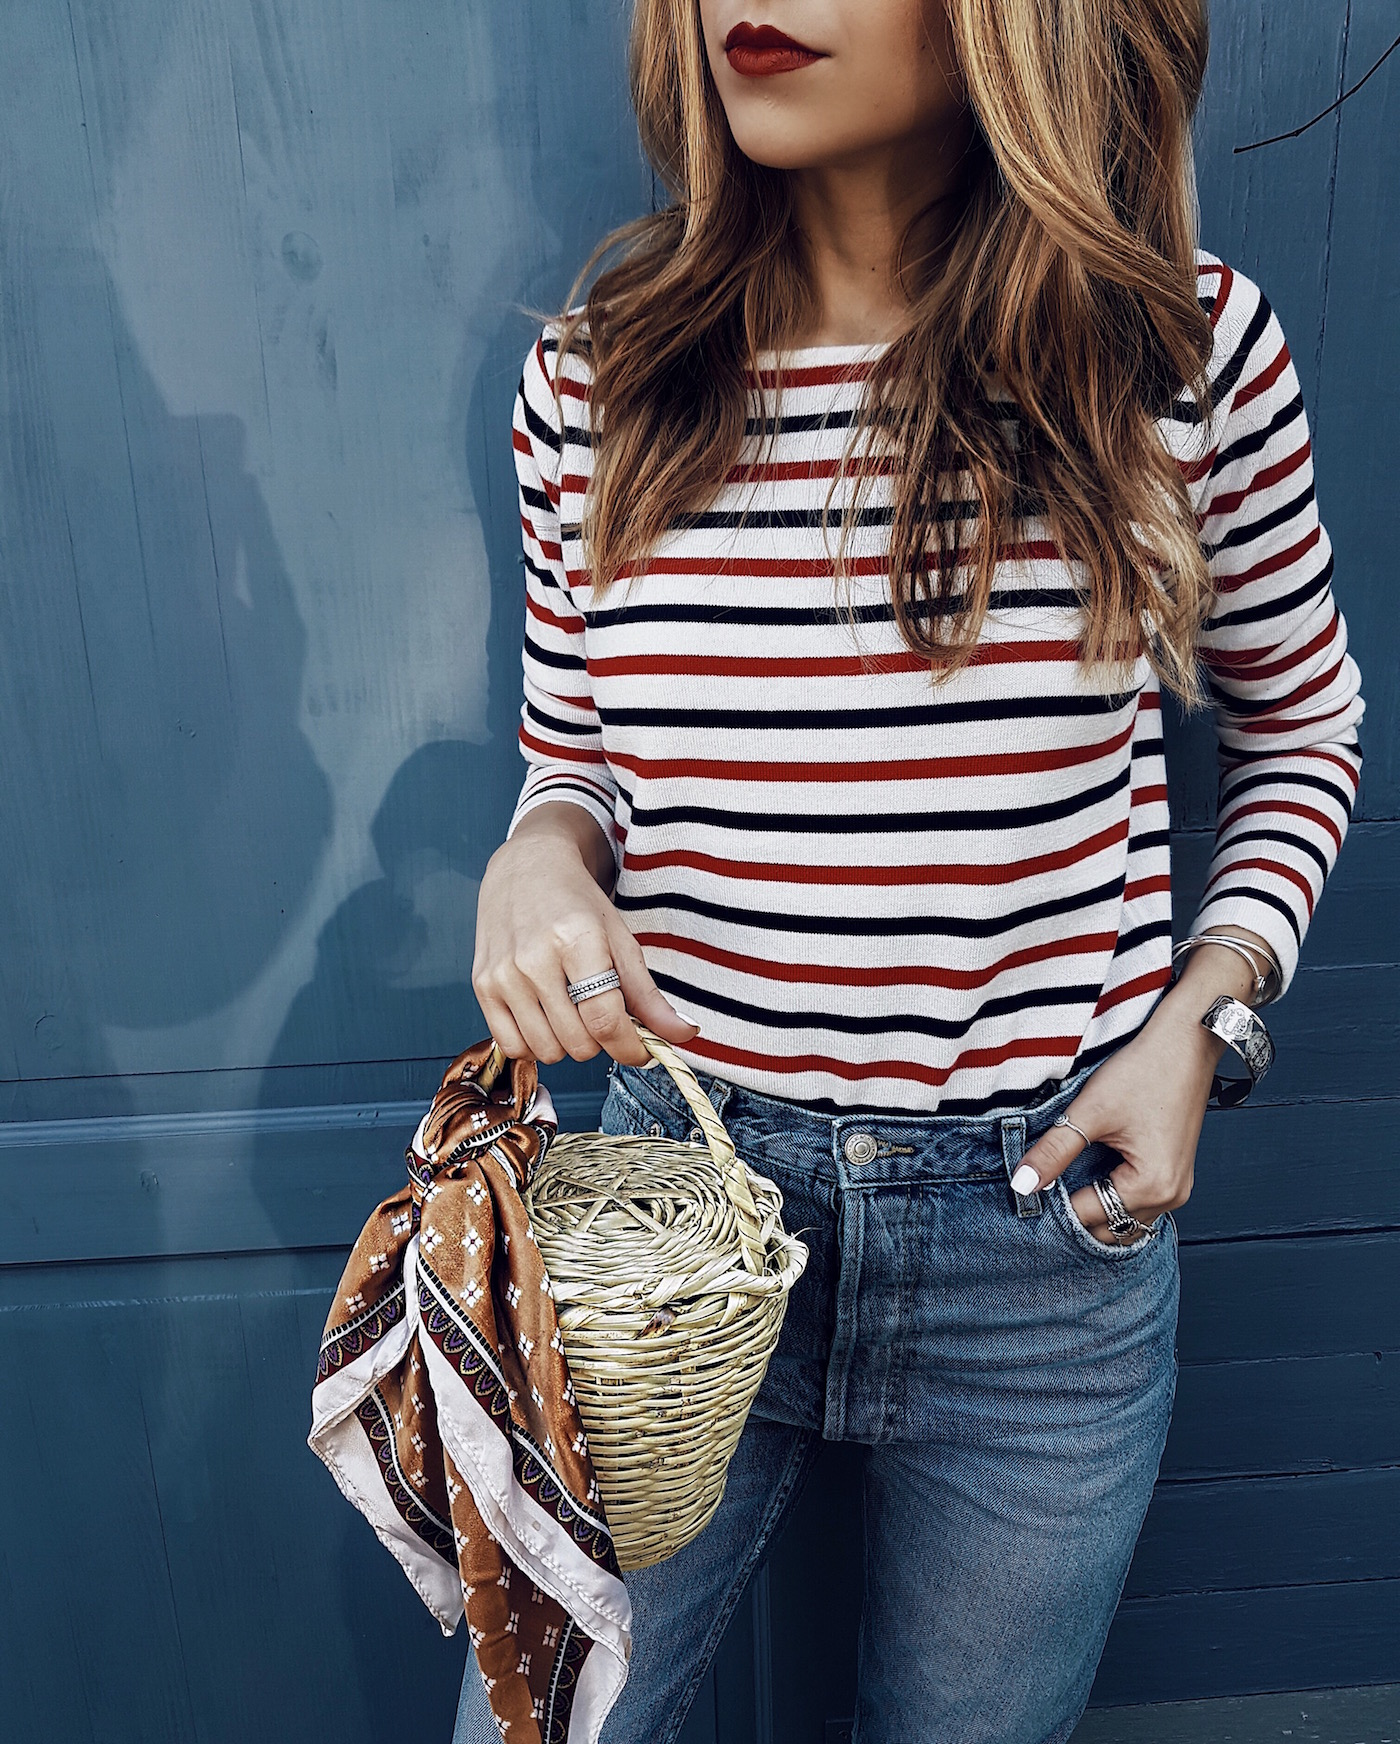 Jane Birkin Basket Bag Spring Summer Trend 2017